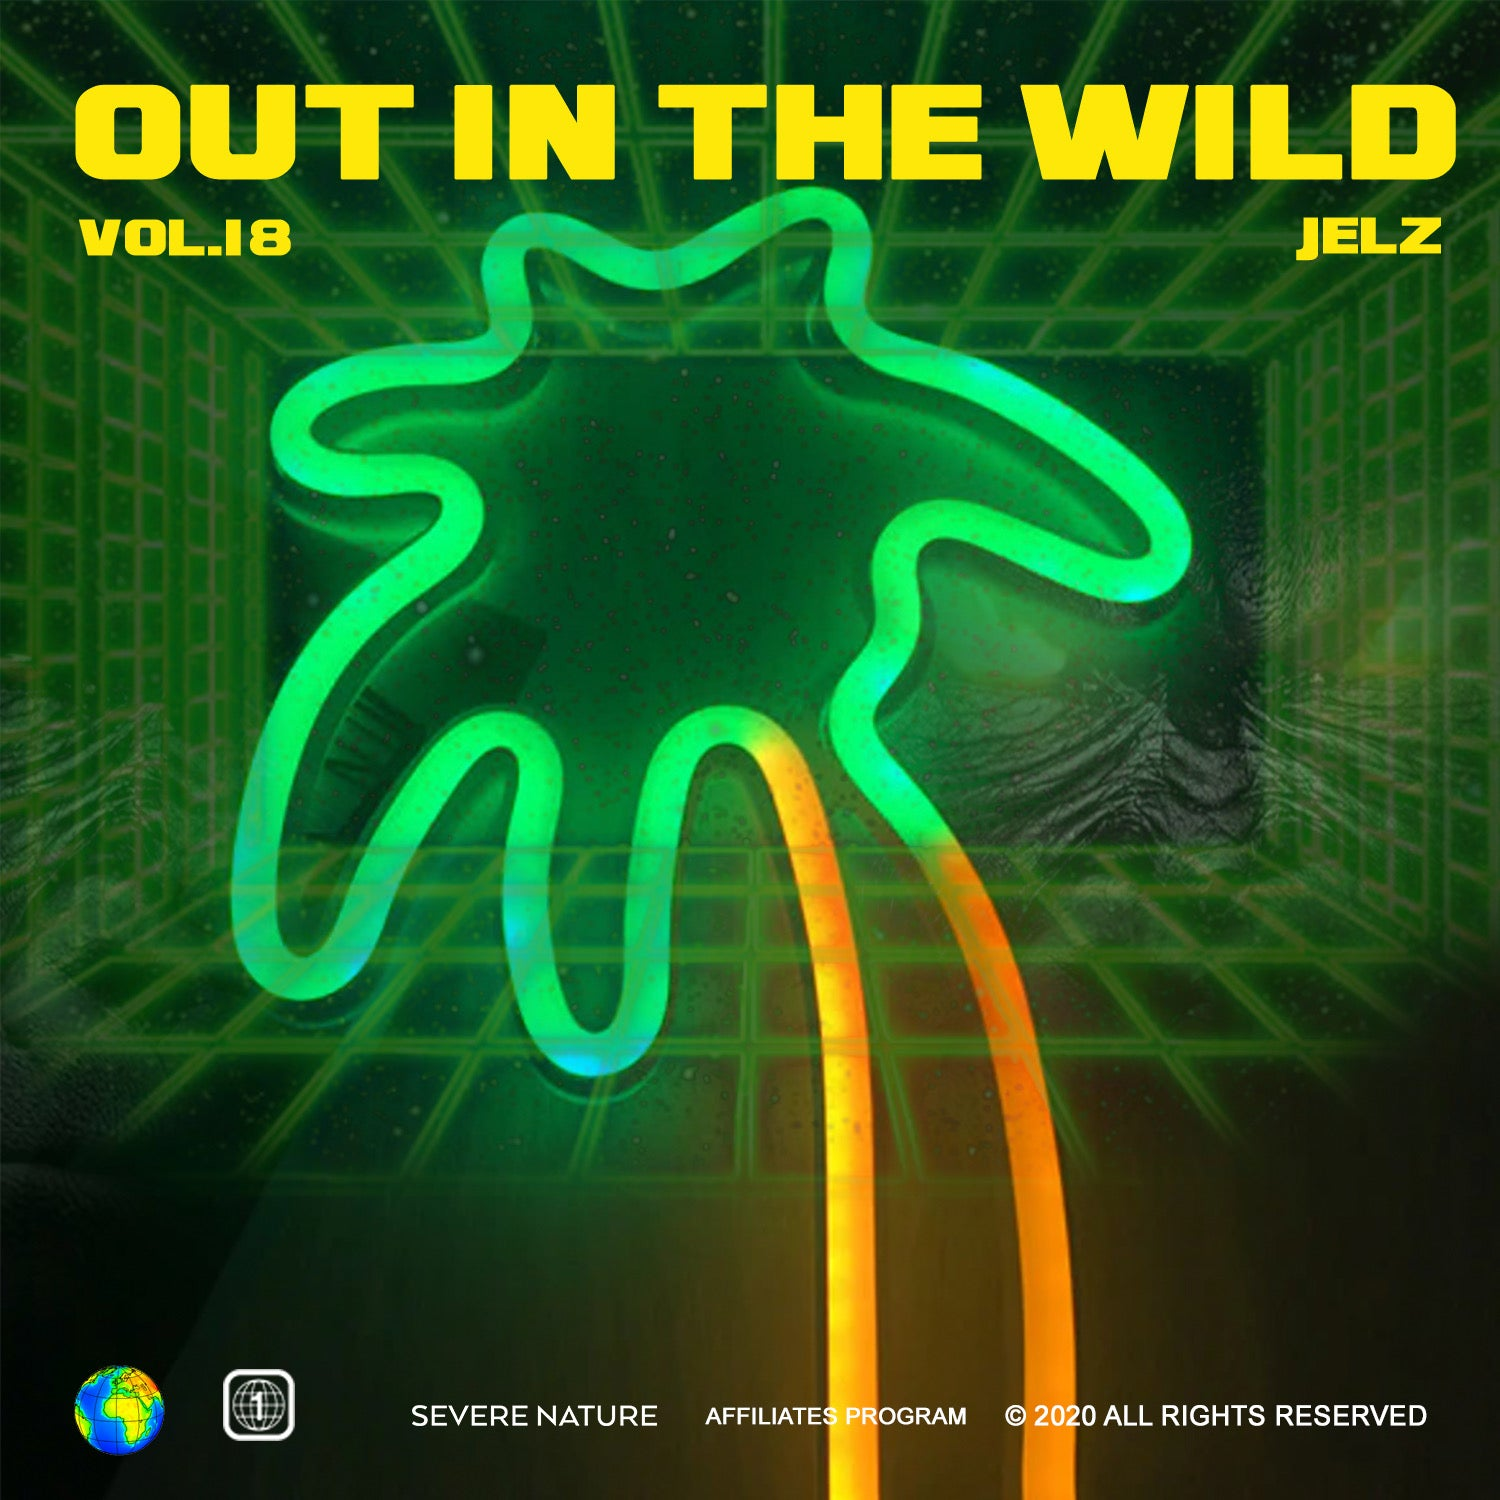 Out In The Wild Vol. 18 Curated by Jelz